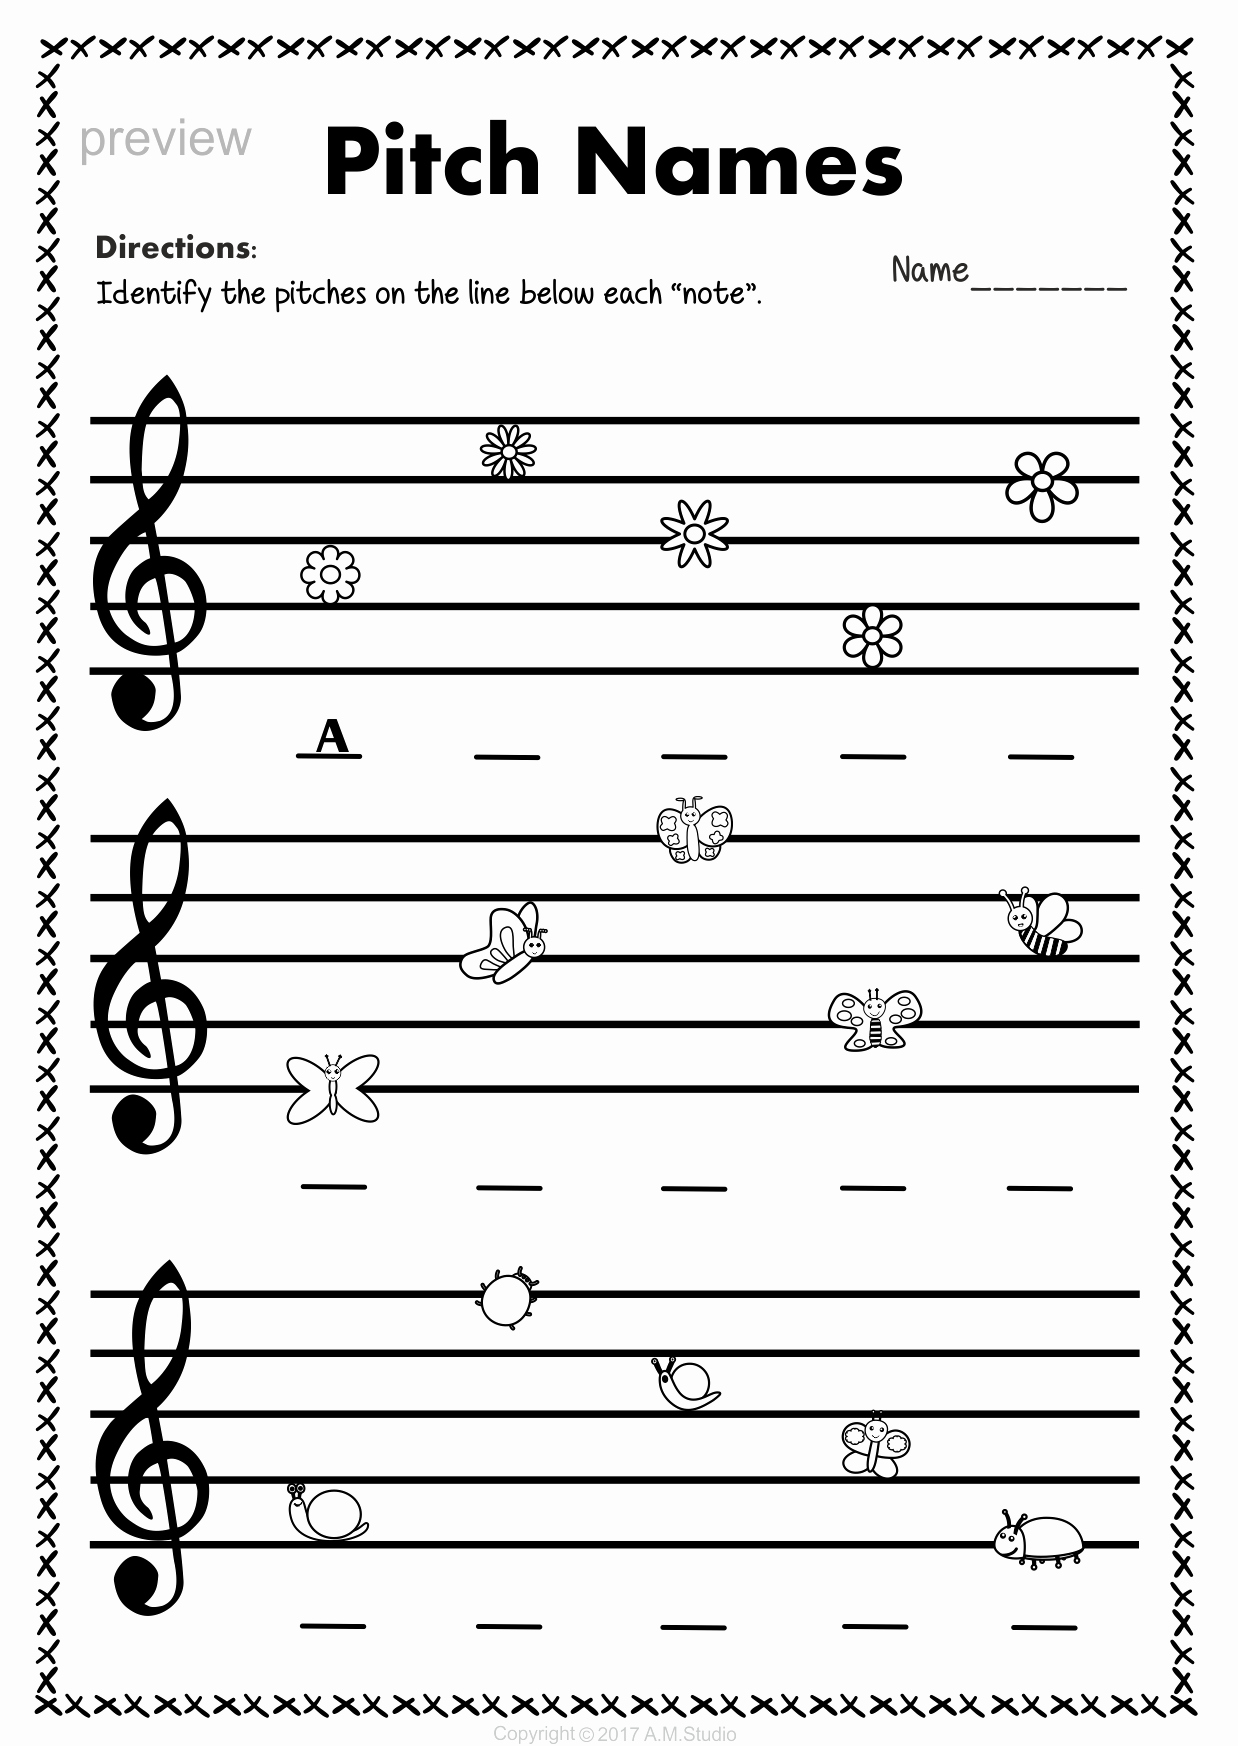 Treble Clef Note Worksheet Inspirational Treble Clef Note Naming Worksheets for Spring5